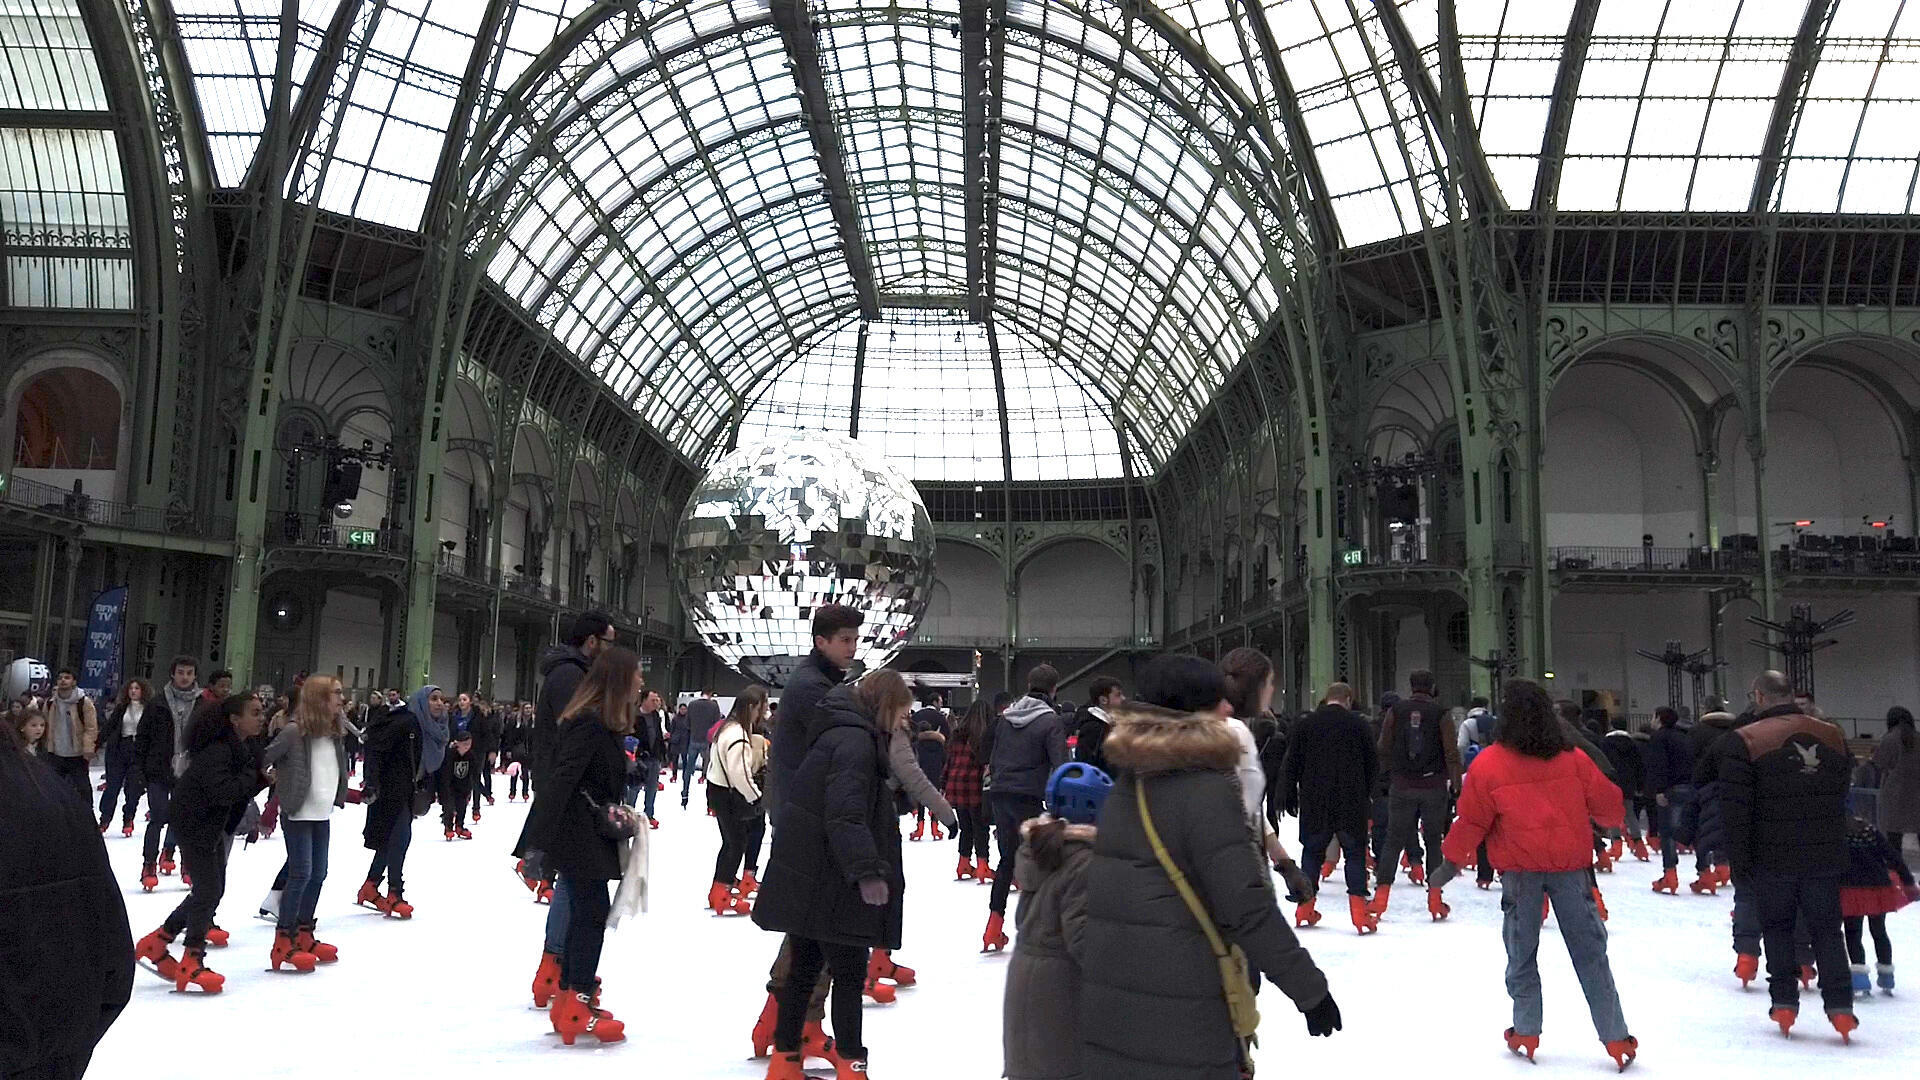 The ice skating rink this winter at the Grand Palais was advertised as the largest indoor rink in the world